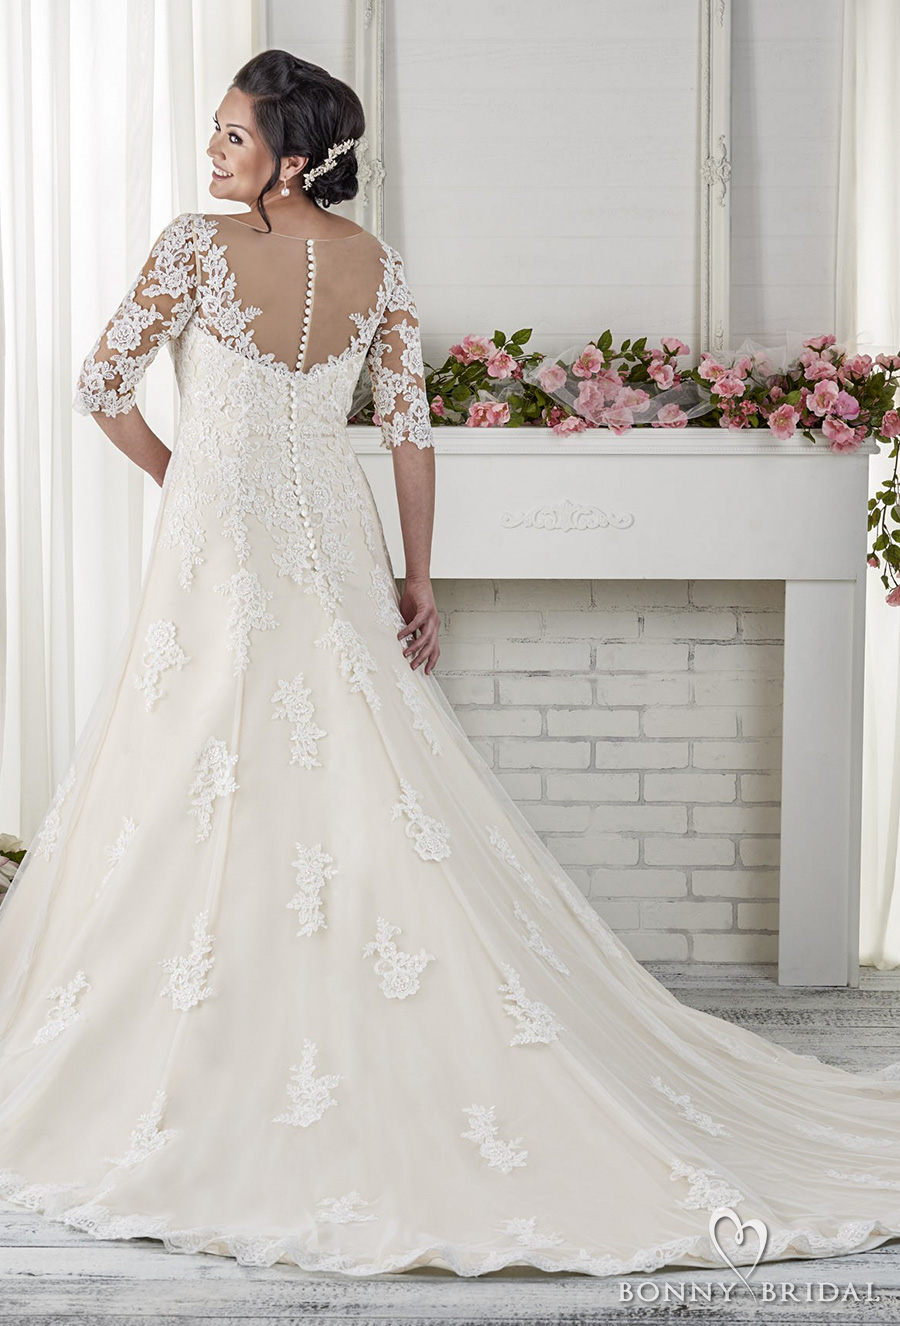 bonny bridal 2017 half sleeves sweetheart neckline heavily embellished bodice plus size drop waist modified a line wedding dress chapel train (1618) bv